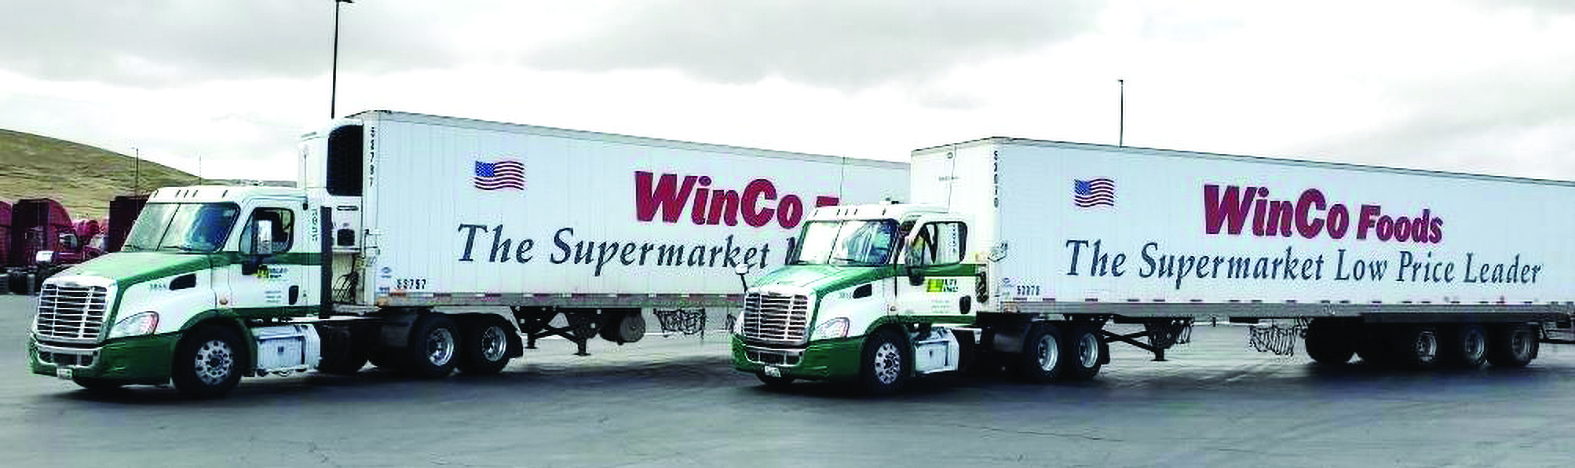 LTI, Inc. carries groceries for WinCo Foods